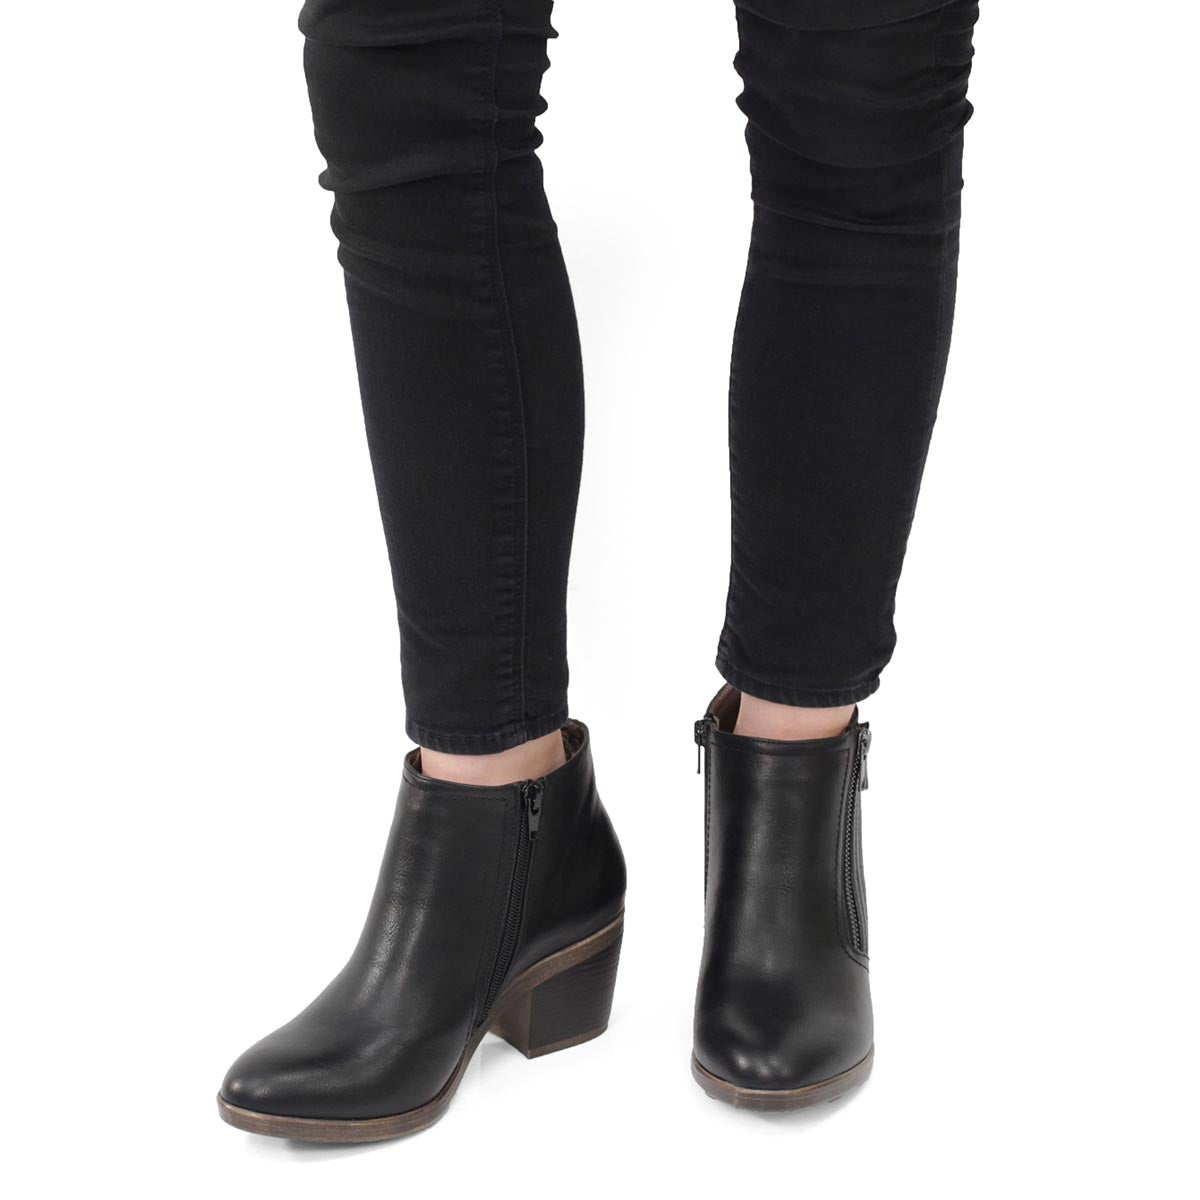 Lds Tiffany black casual ankle boot